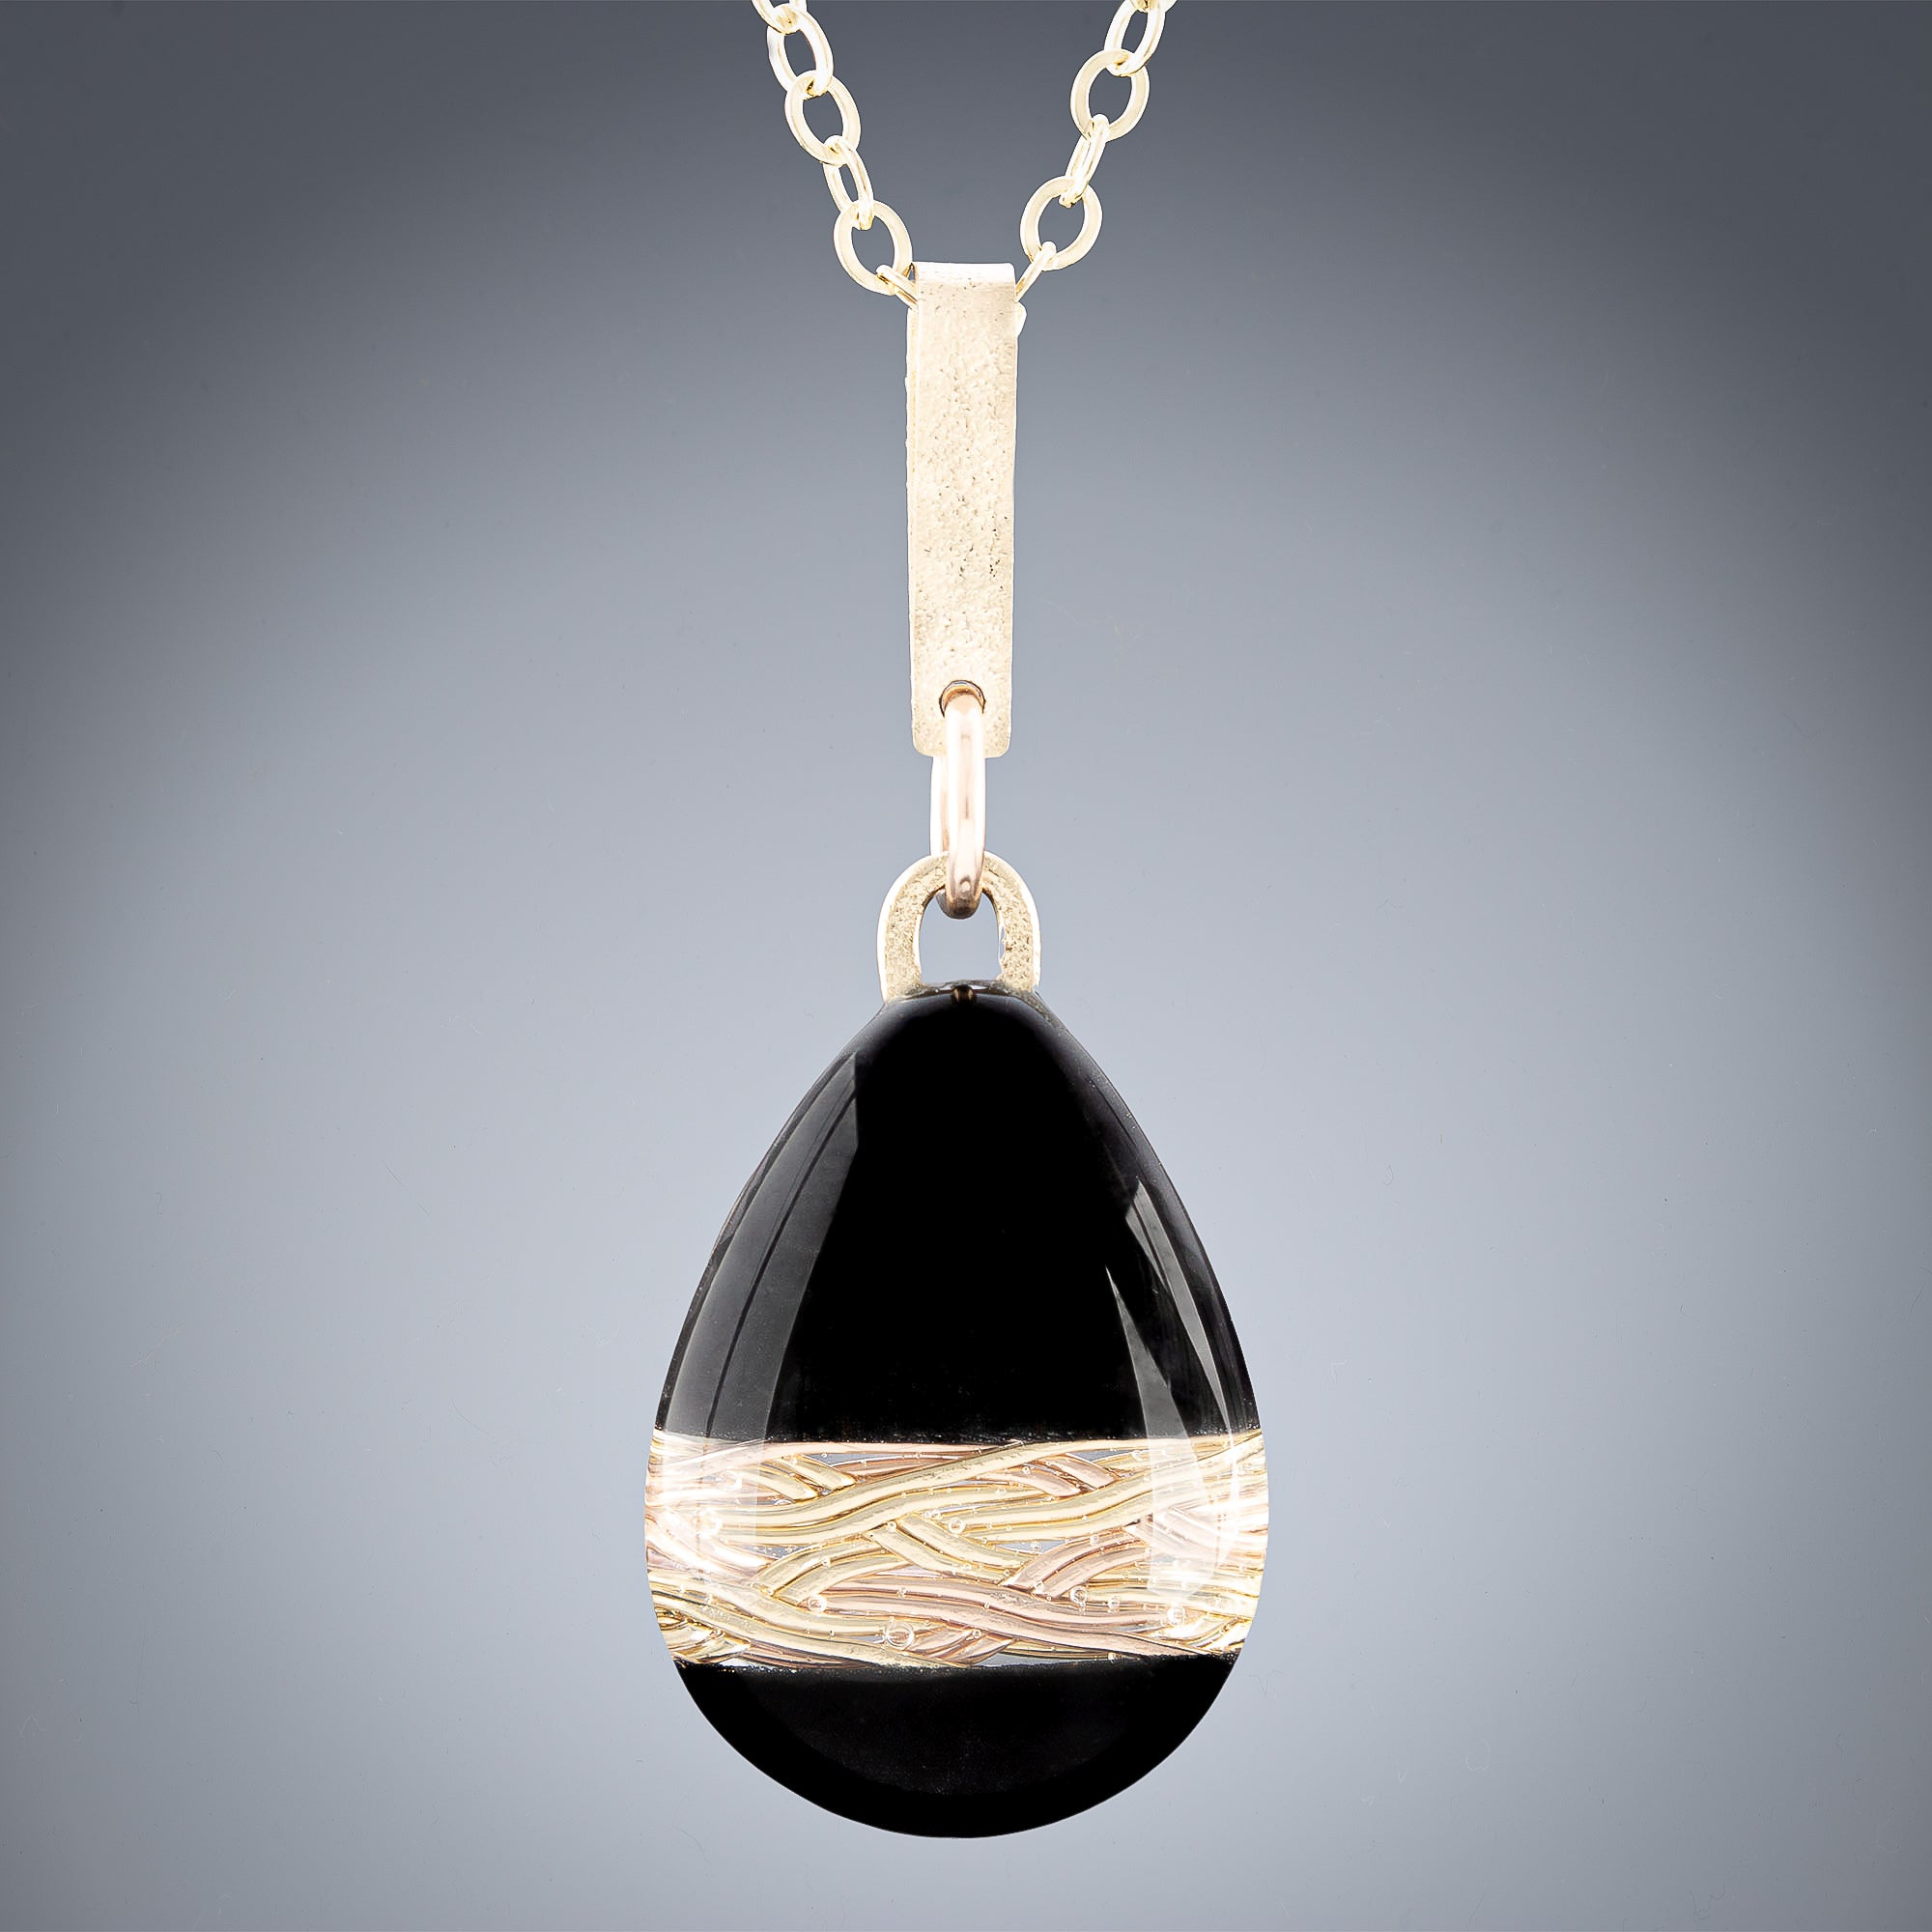 Handwoven Gold and Black Enamel Teardrop Pendant Necklace in both 14K Yellow and Rose Gold Fill